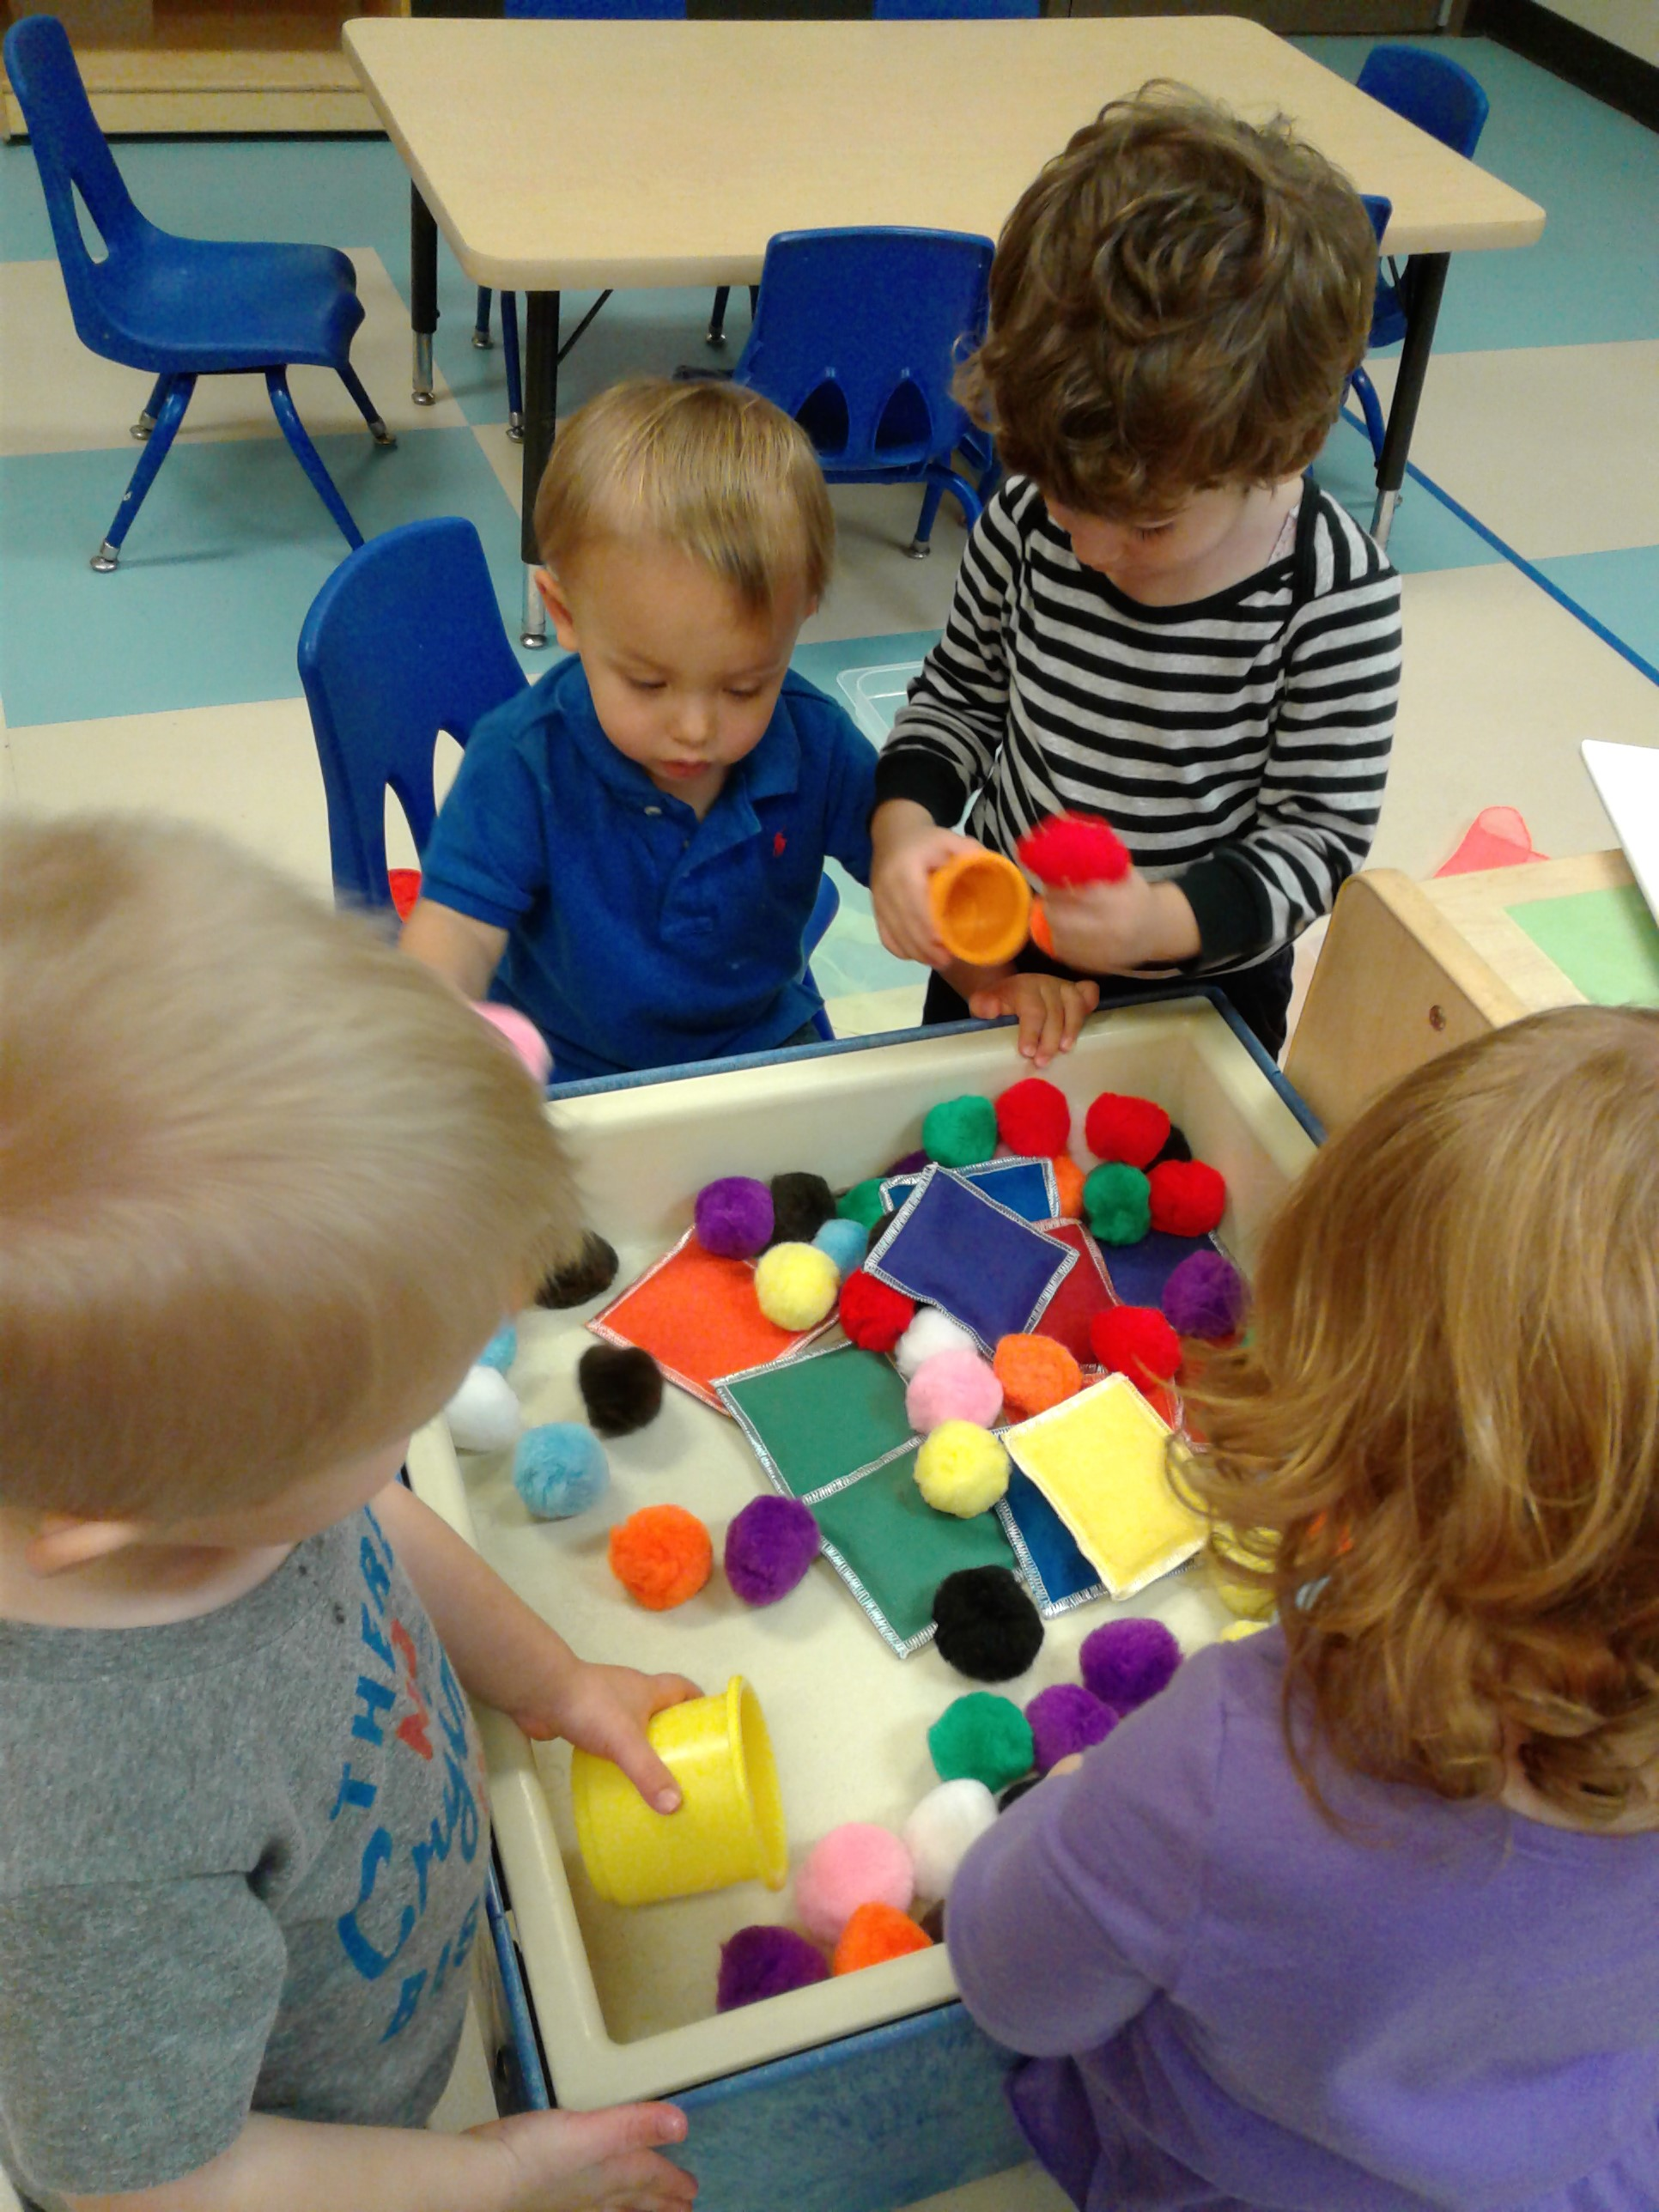 Sensory play is so important for children. All of our classrooms have sensory tables with new and exciting materials for children to play with and explore. These toddlers are using their fine-motor skills to scoop pom-pom balls into cups.